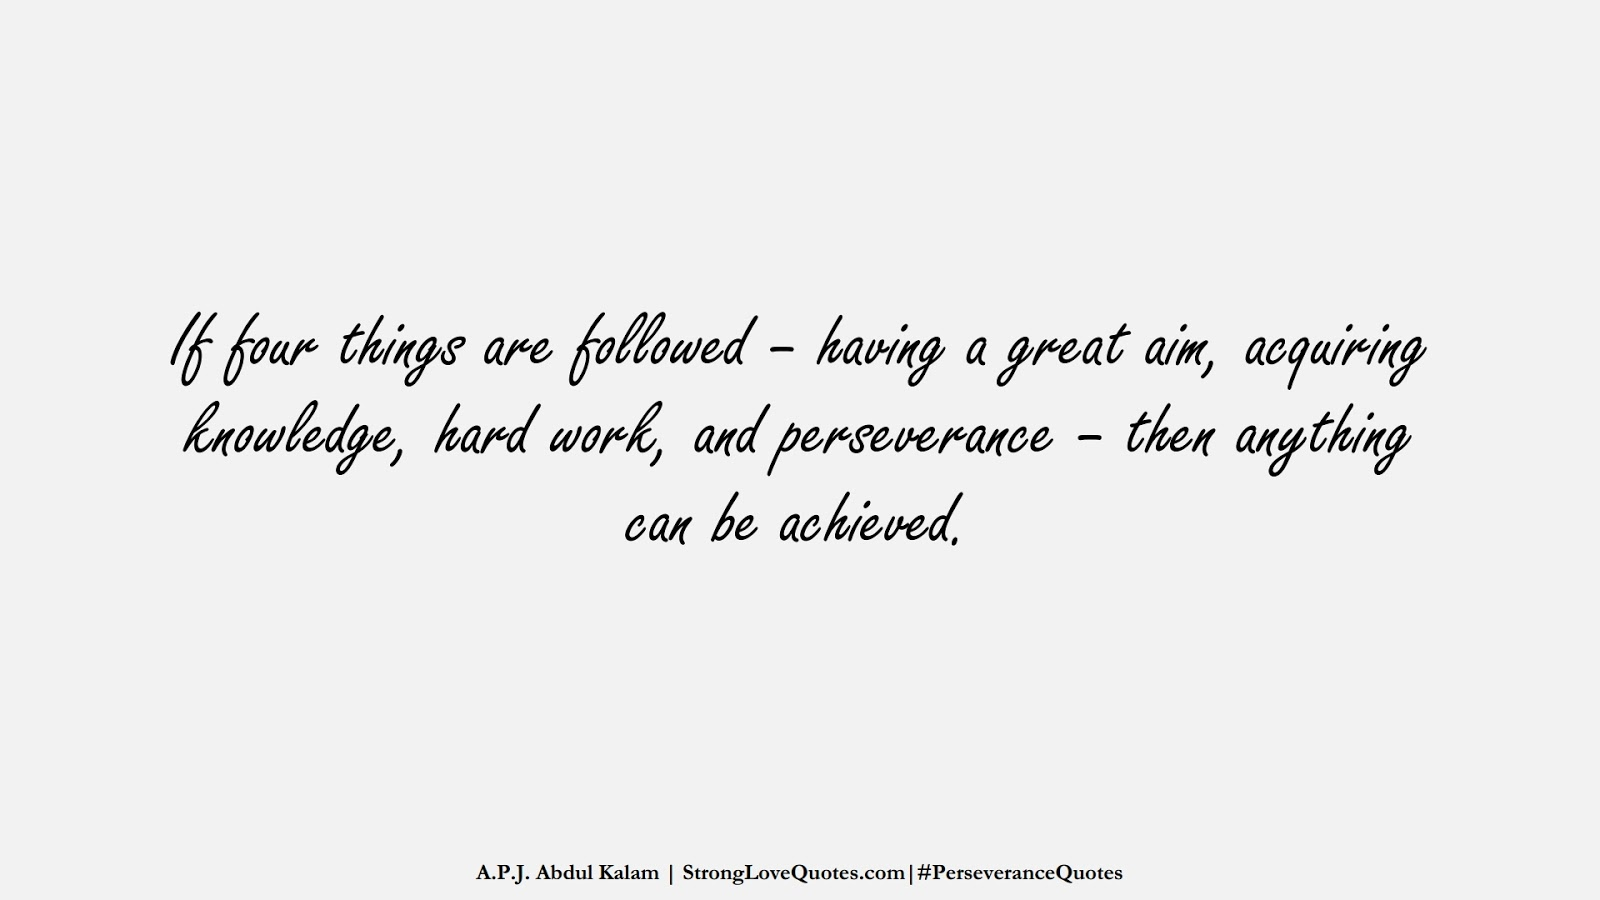 If four things are followed – having a great aim, acquiring knowledge, hard work, and perseverance – then anything can be achieved. (A.P.J. Abdul Kalam);  #PerseveranceQuotes